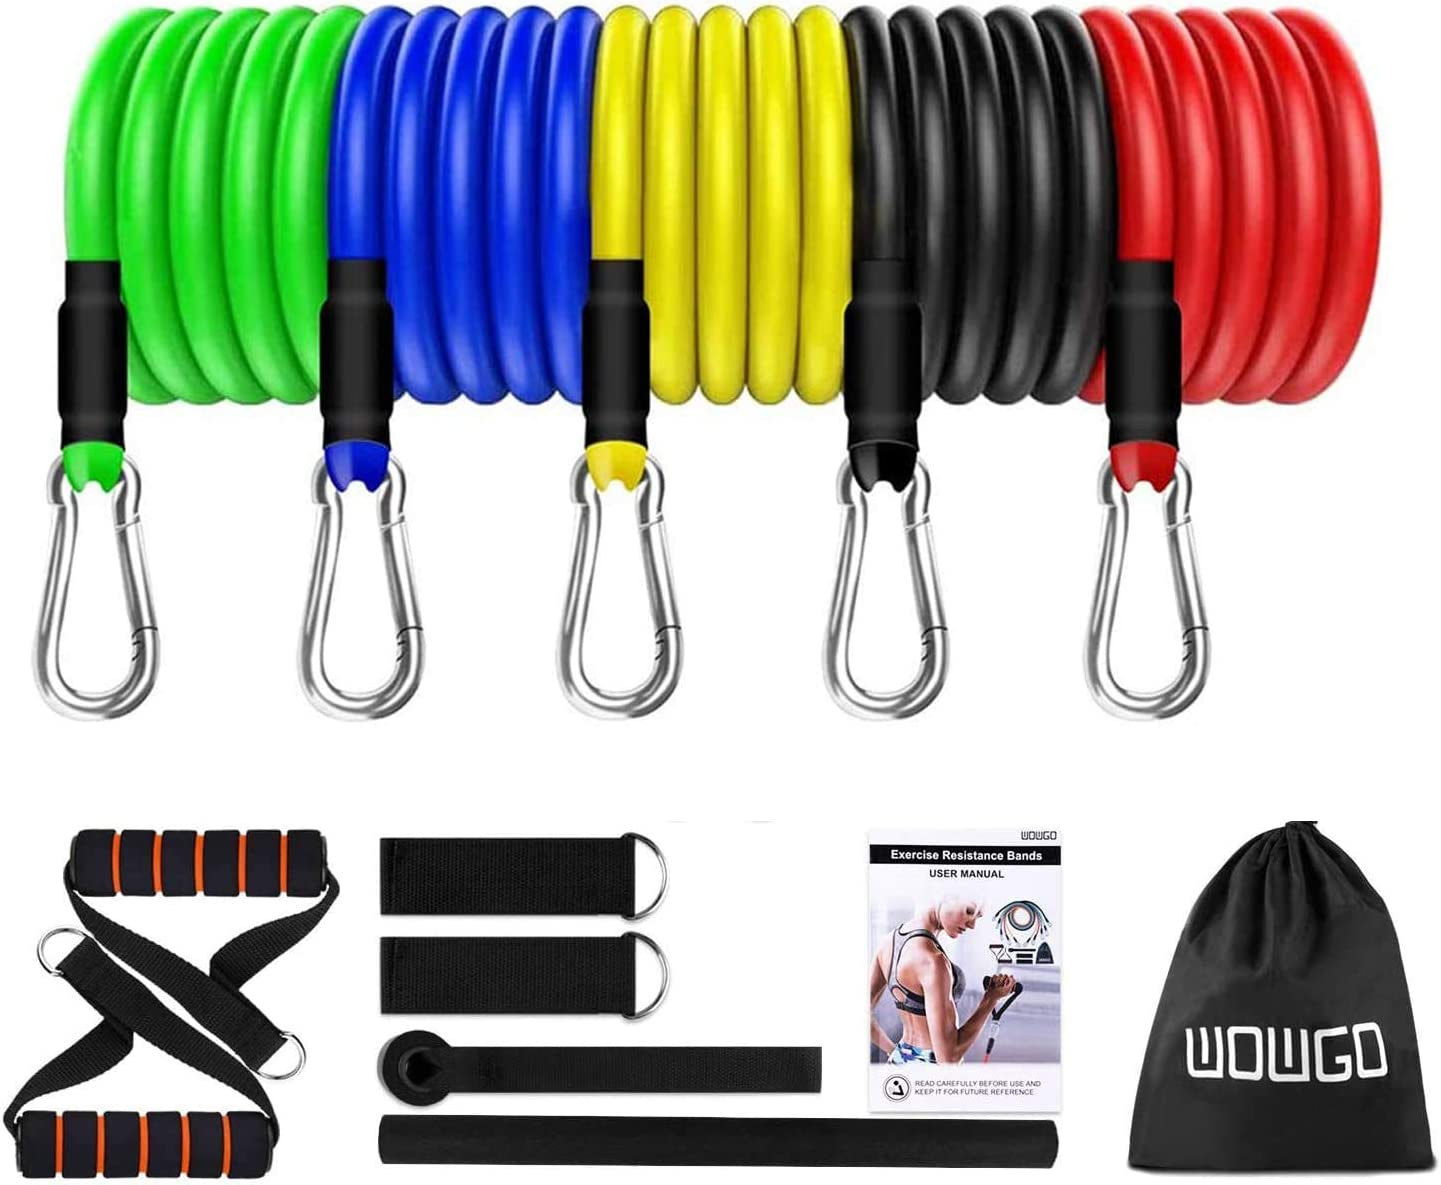 WOWGO Exercise Resistance Bands Set - Fitness Stretch Workout Bands with 5pc Fitness Tubes, Foam Handles, Ankle Straps, Door Anchor for Men Women, Up to 125 lbs, Your Home Gym